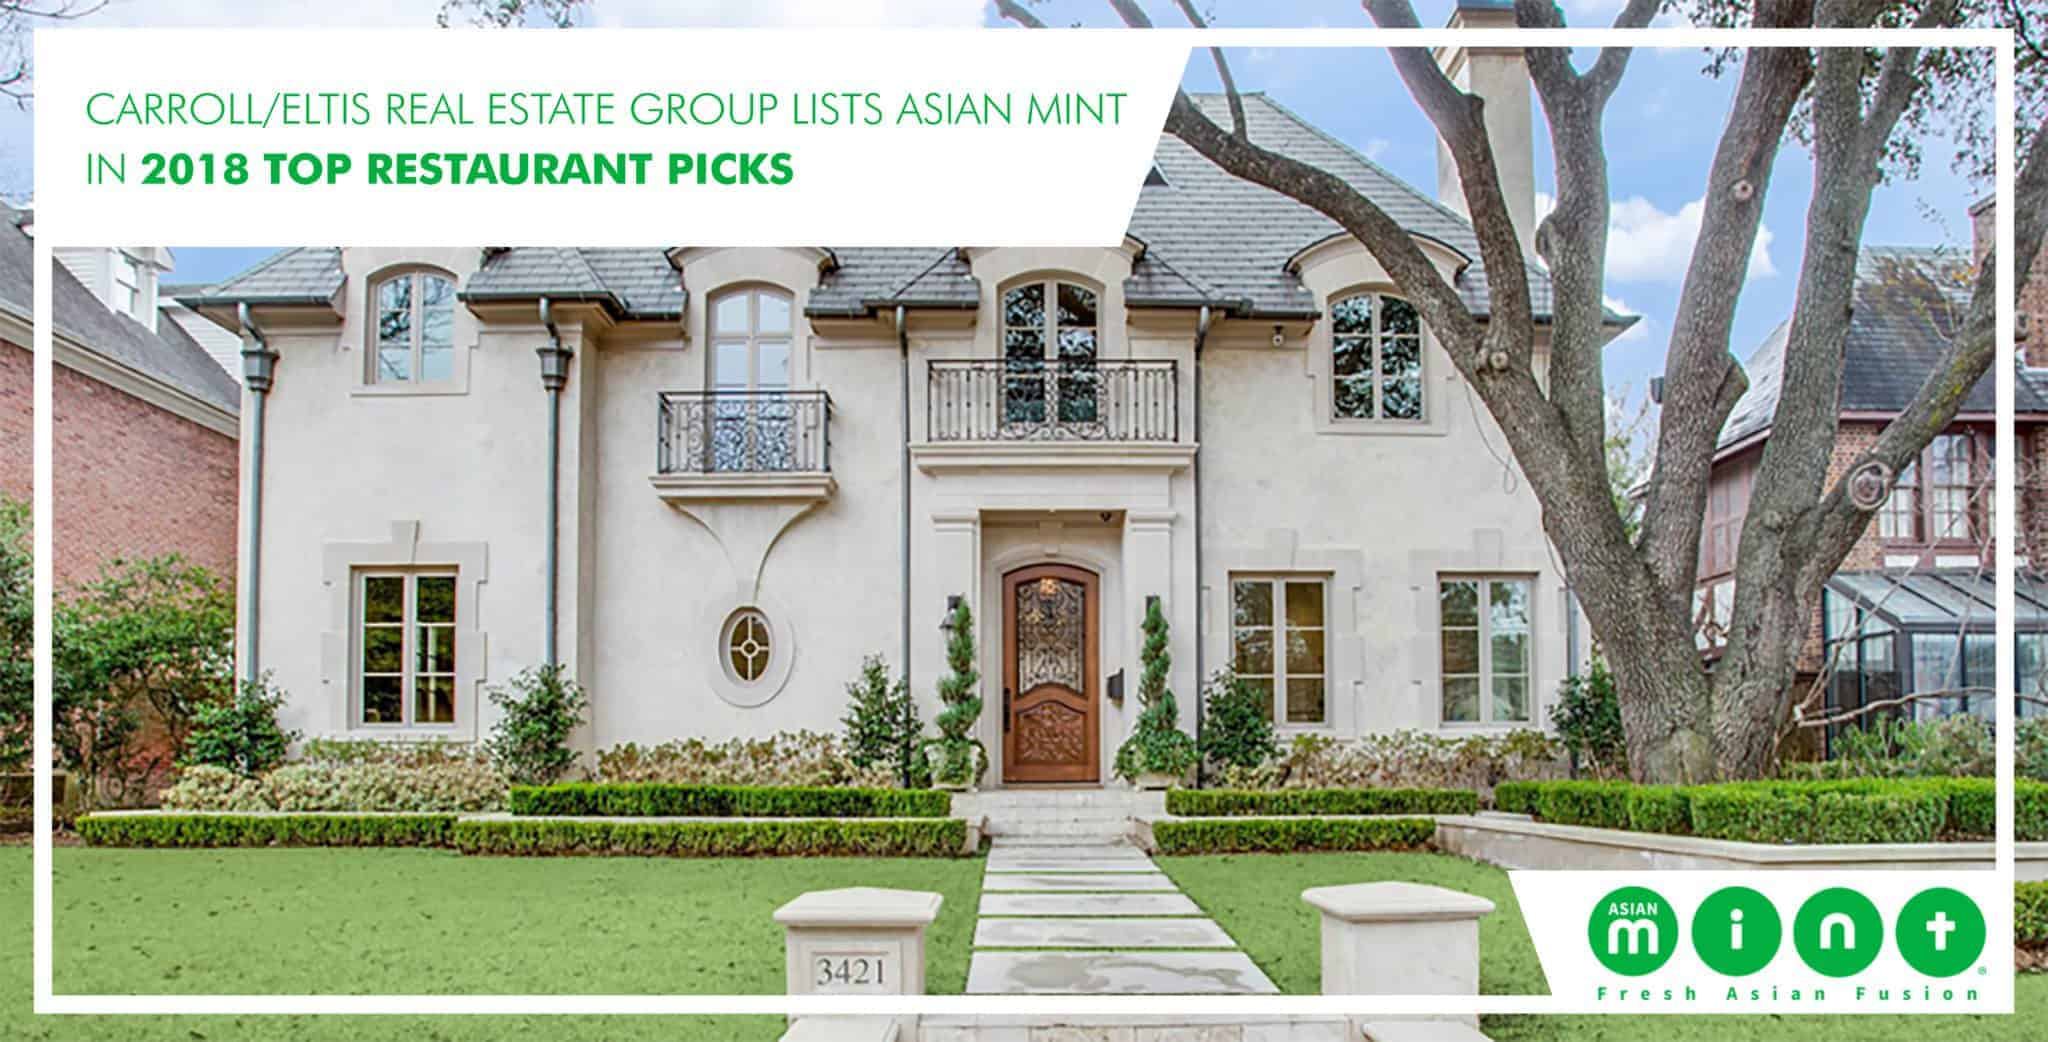 Carroll/Eltis Real Estate Group Lists Asian Mint in 2018 Top Restaurant Pick